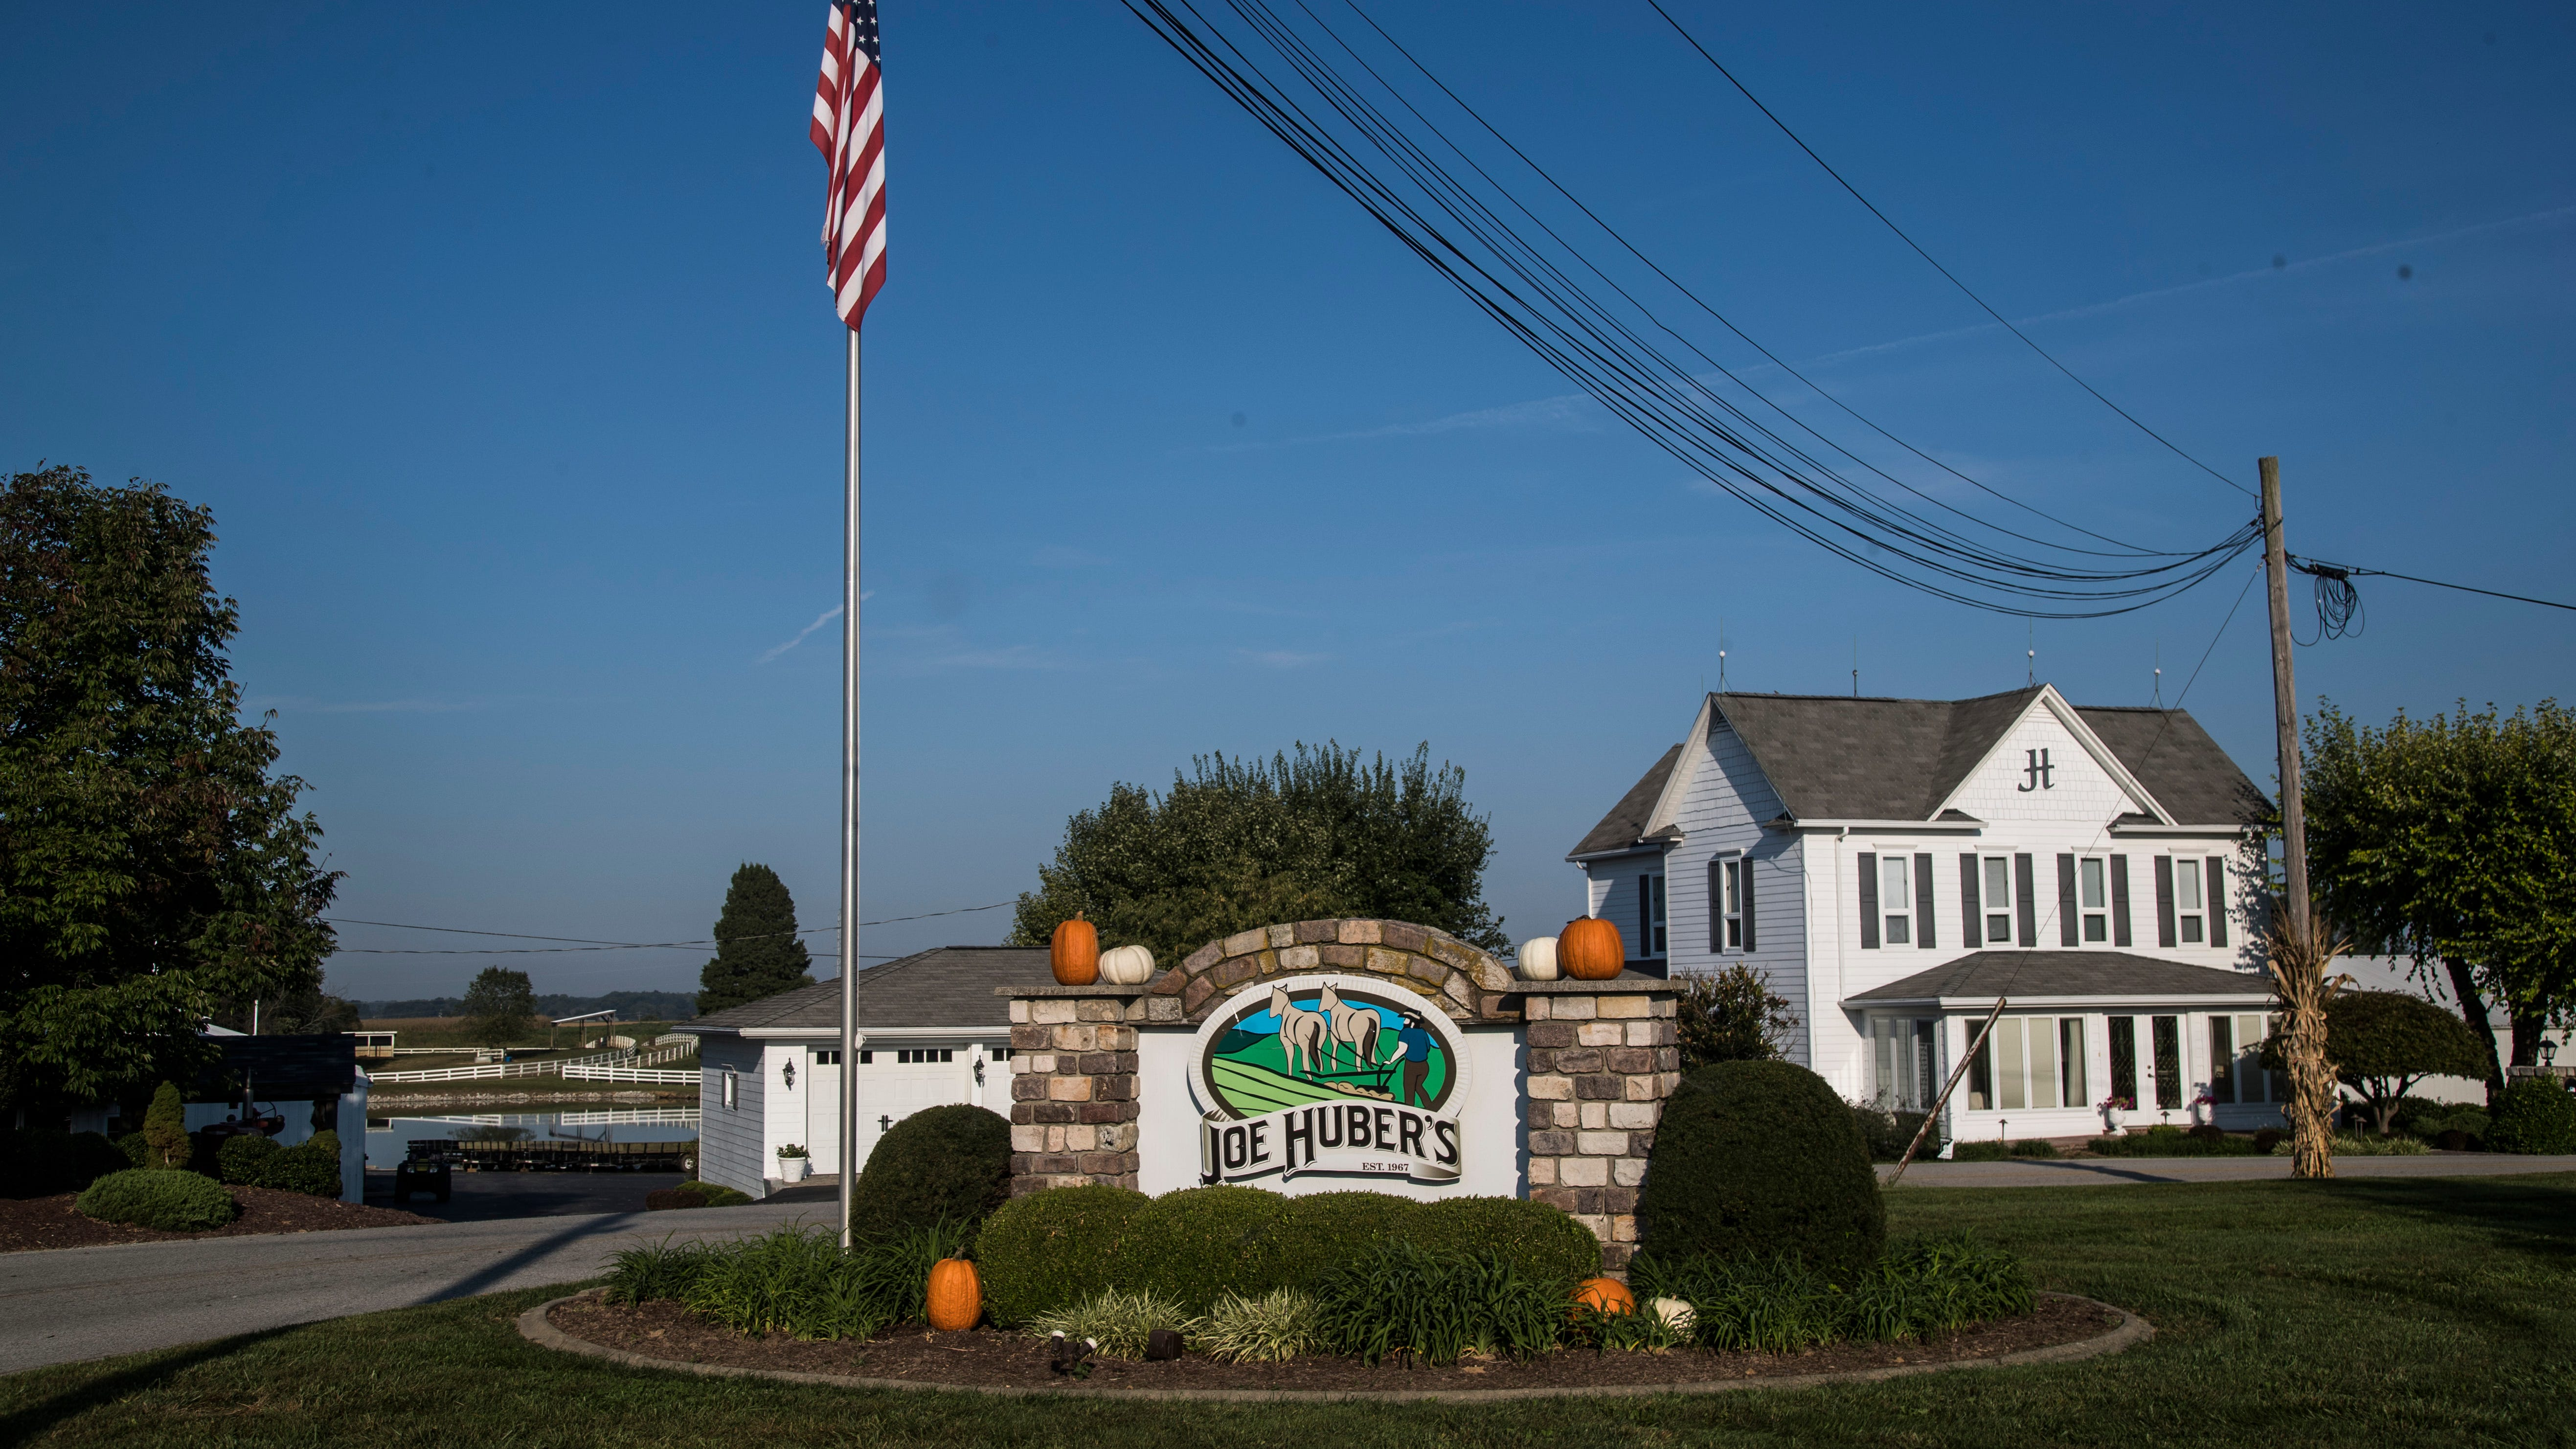 Family feud was behind decision to put Joe Huber's farm up for auction